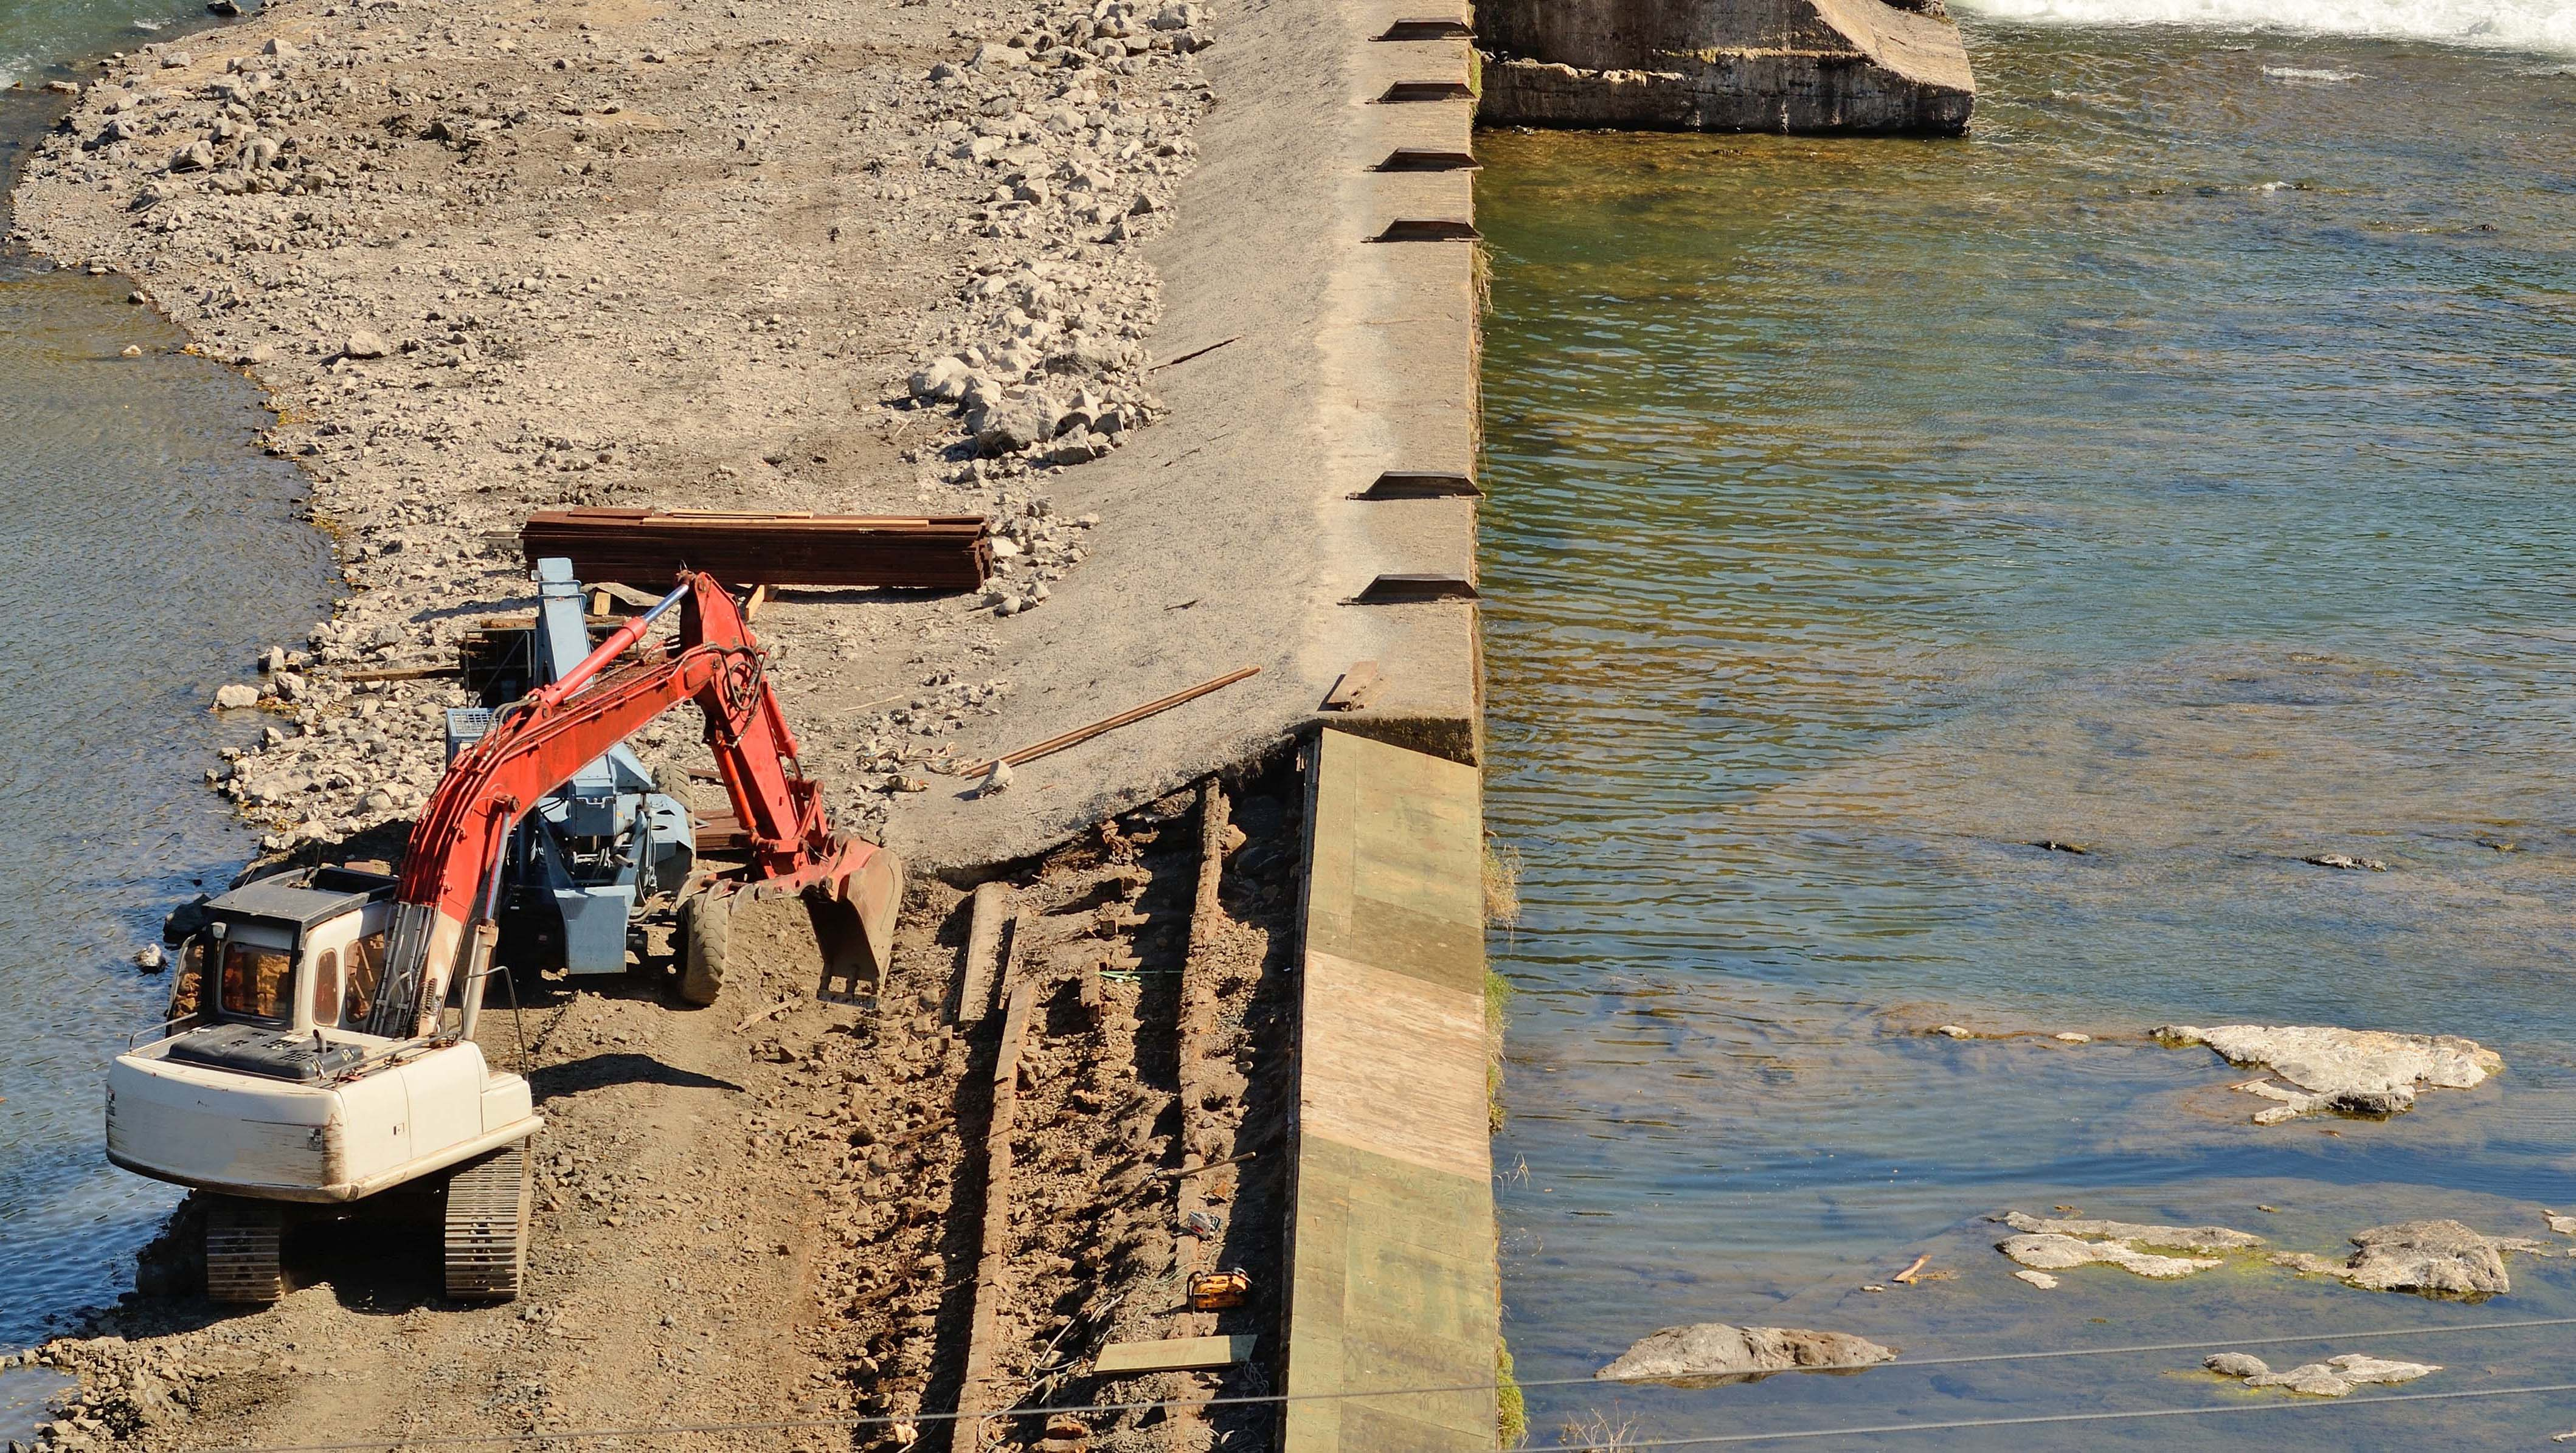 More Than $70 Billion Needed to Rehabilitate Our Nation's Dams